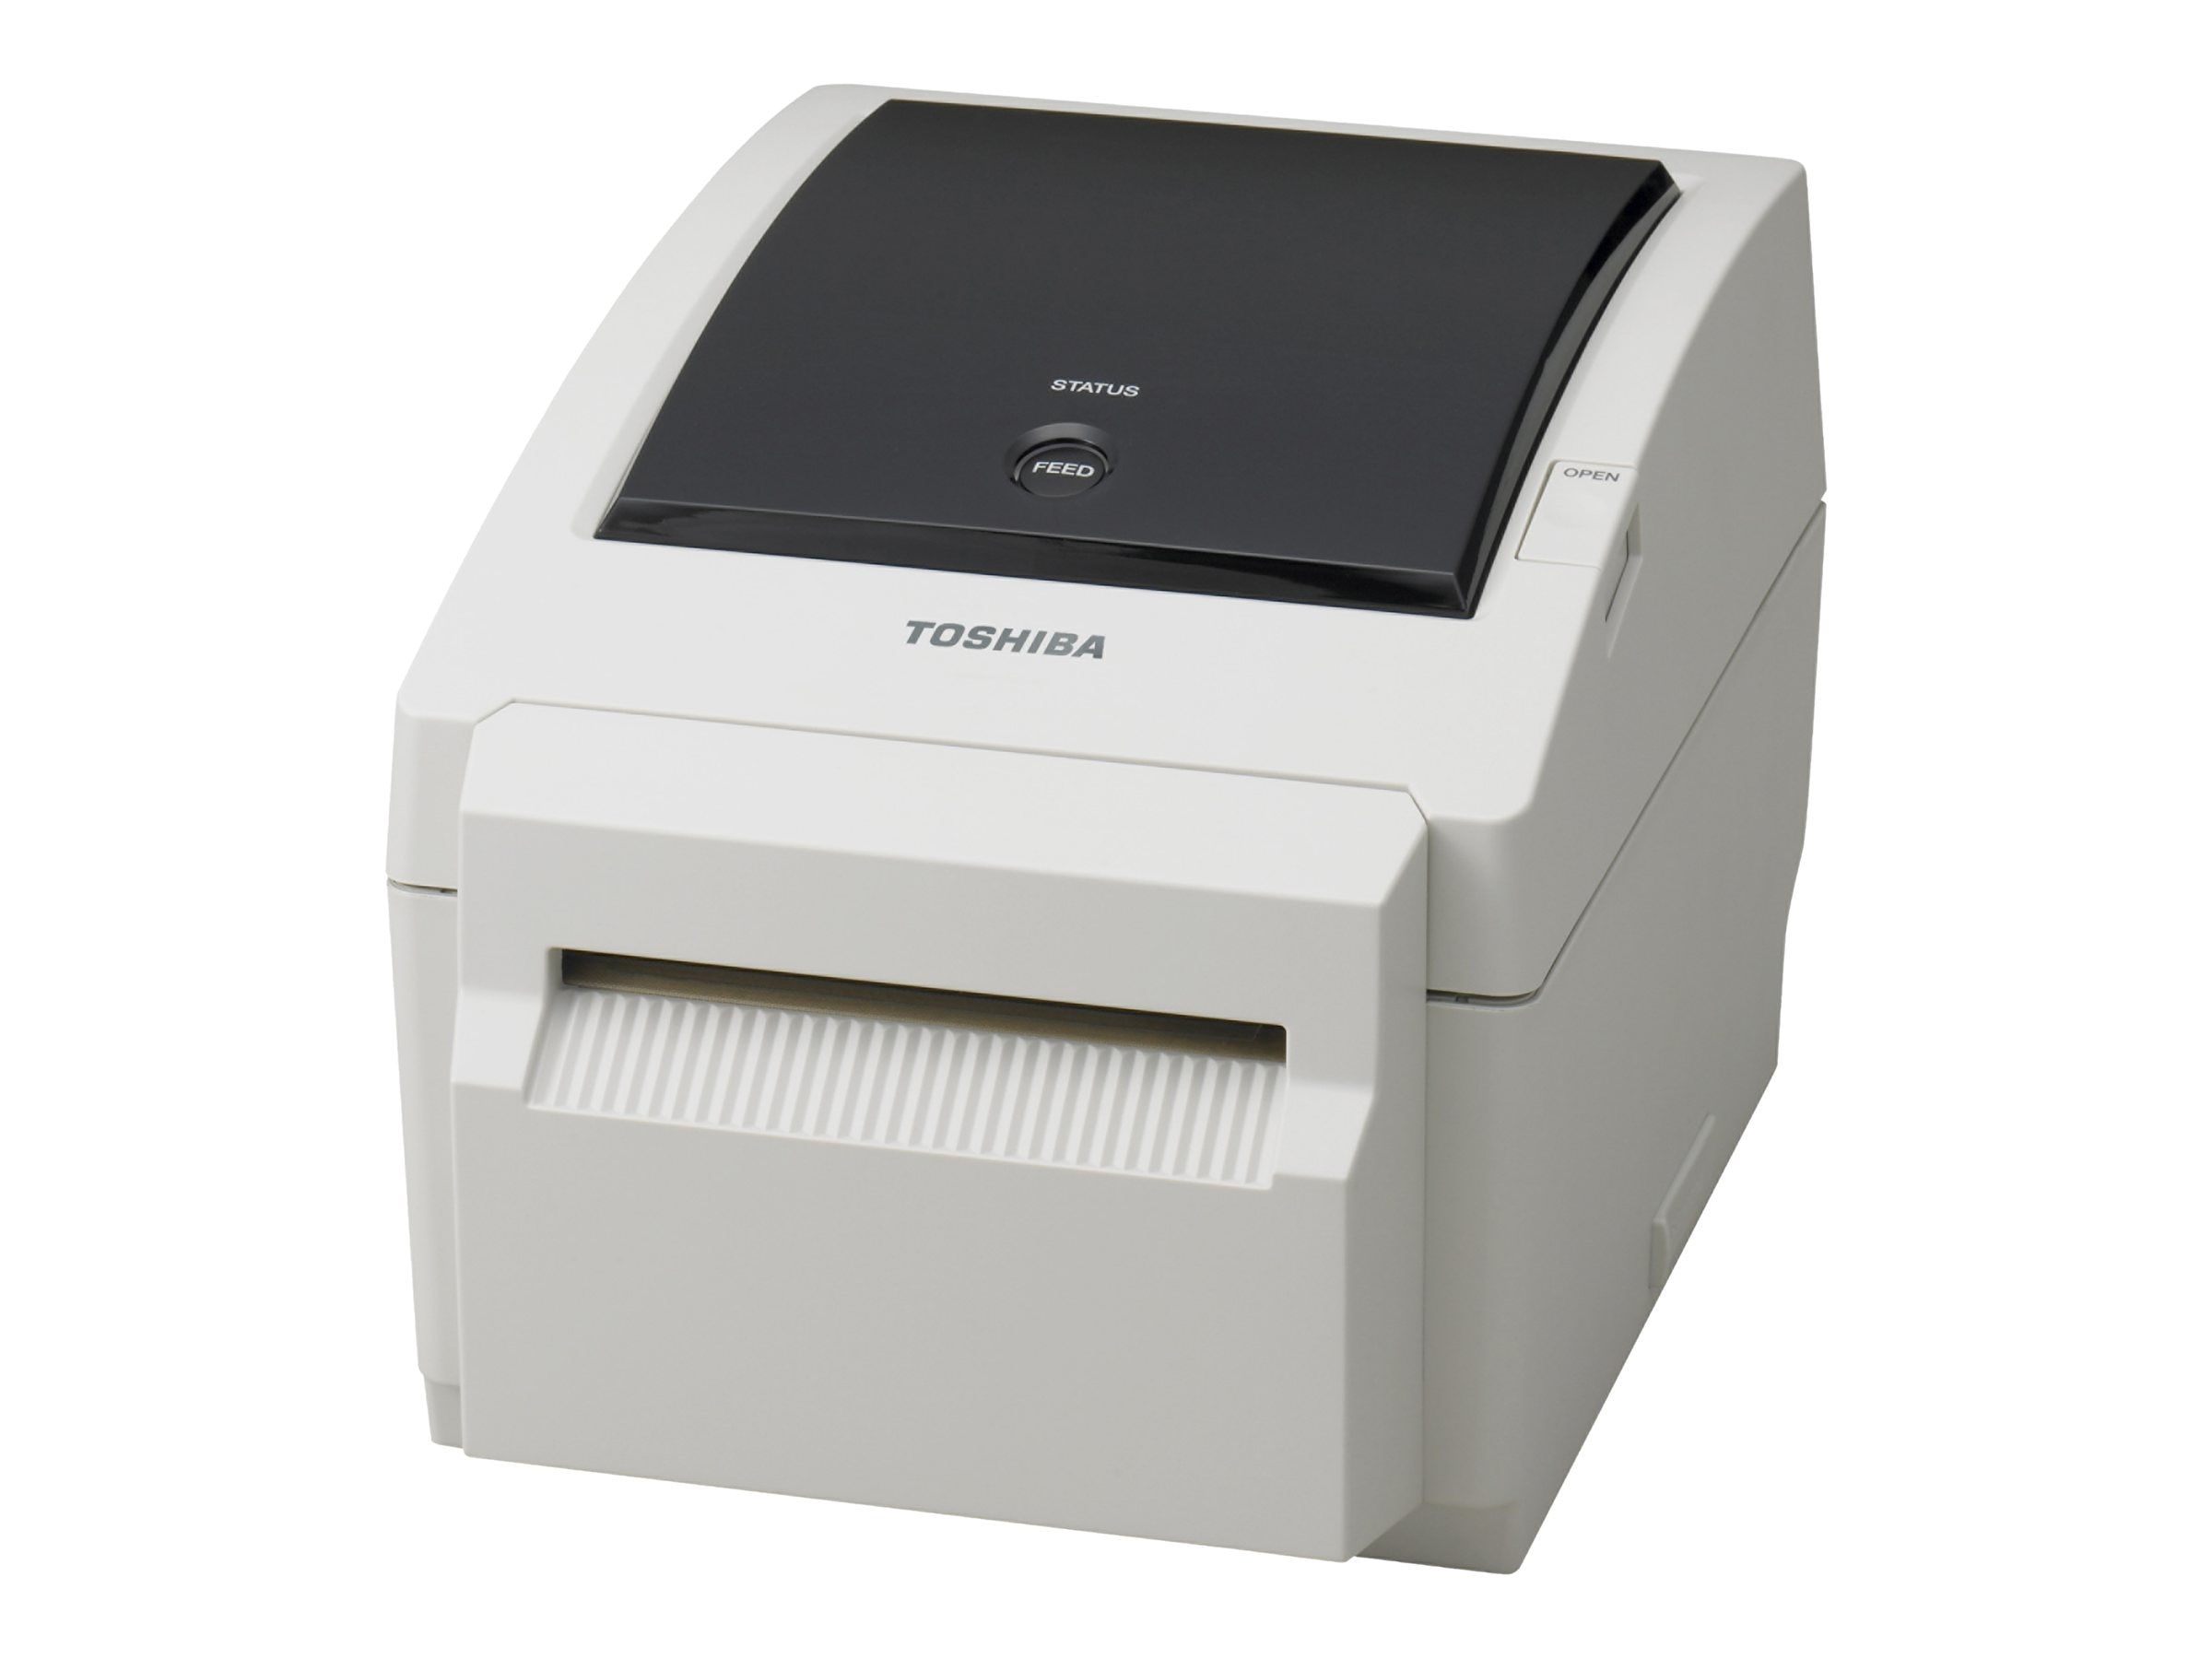 Toshiba B-EV4D GS 4 Wide 203dpi 5ips Direct Thermal Desktop Printer, B-EV4D-GS14-QM-R, 24746798, Printers - Label